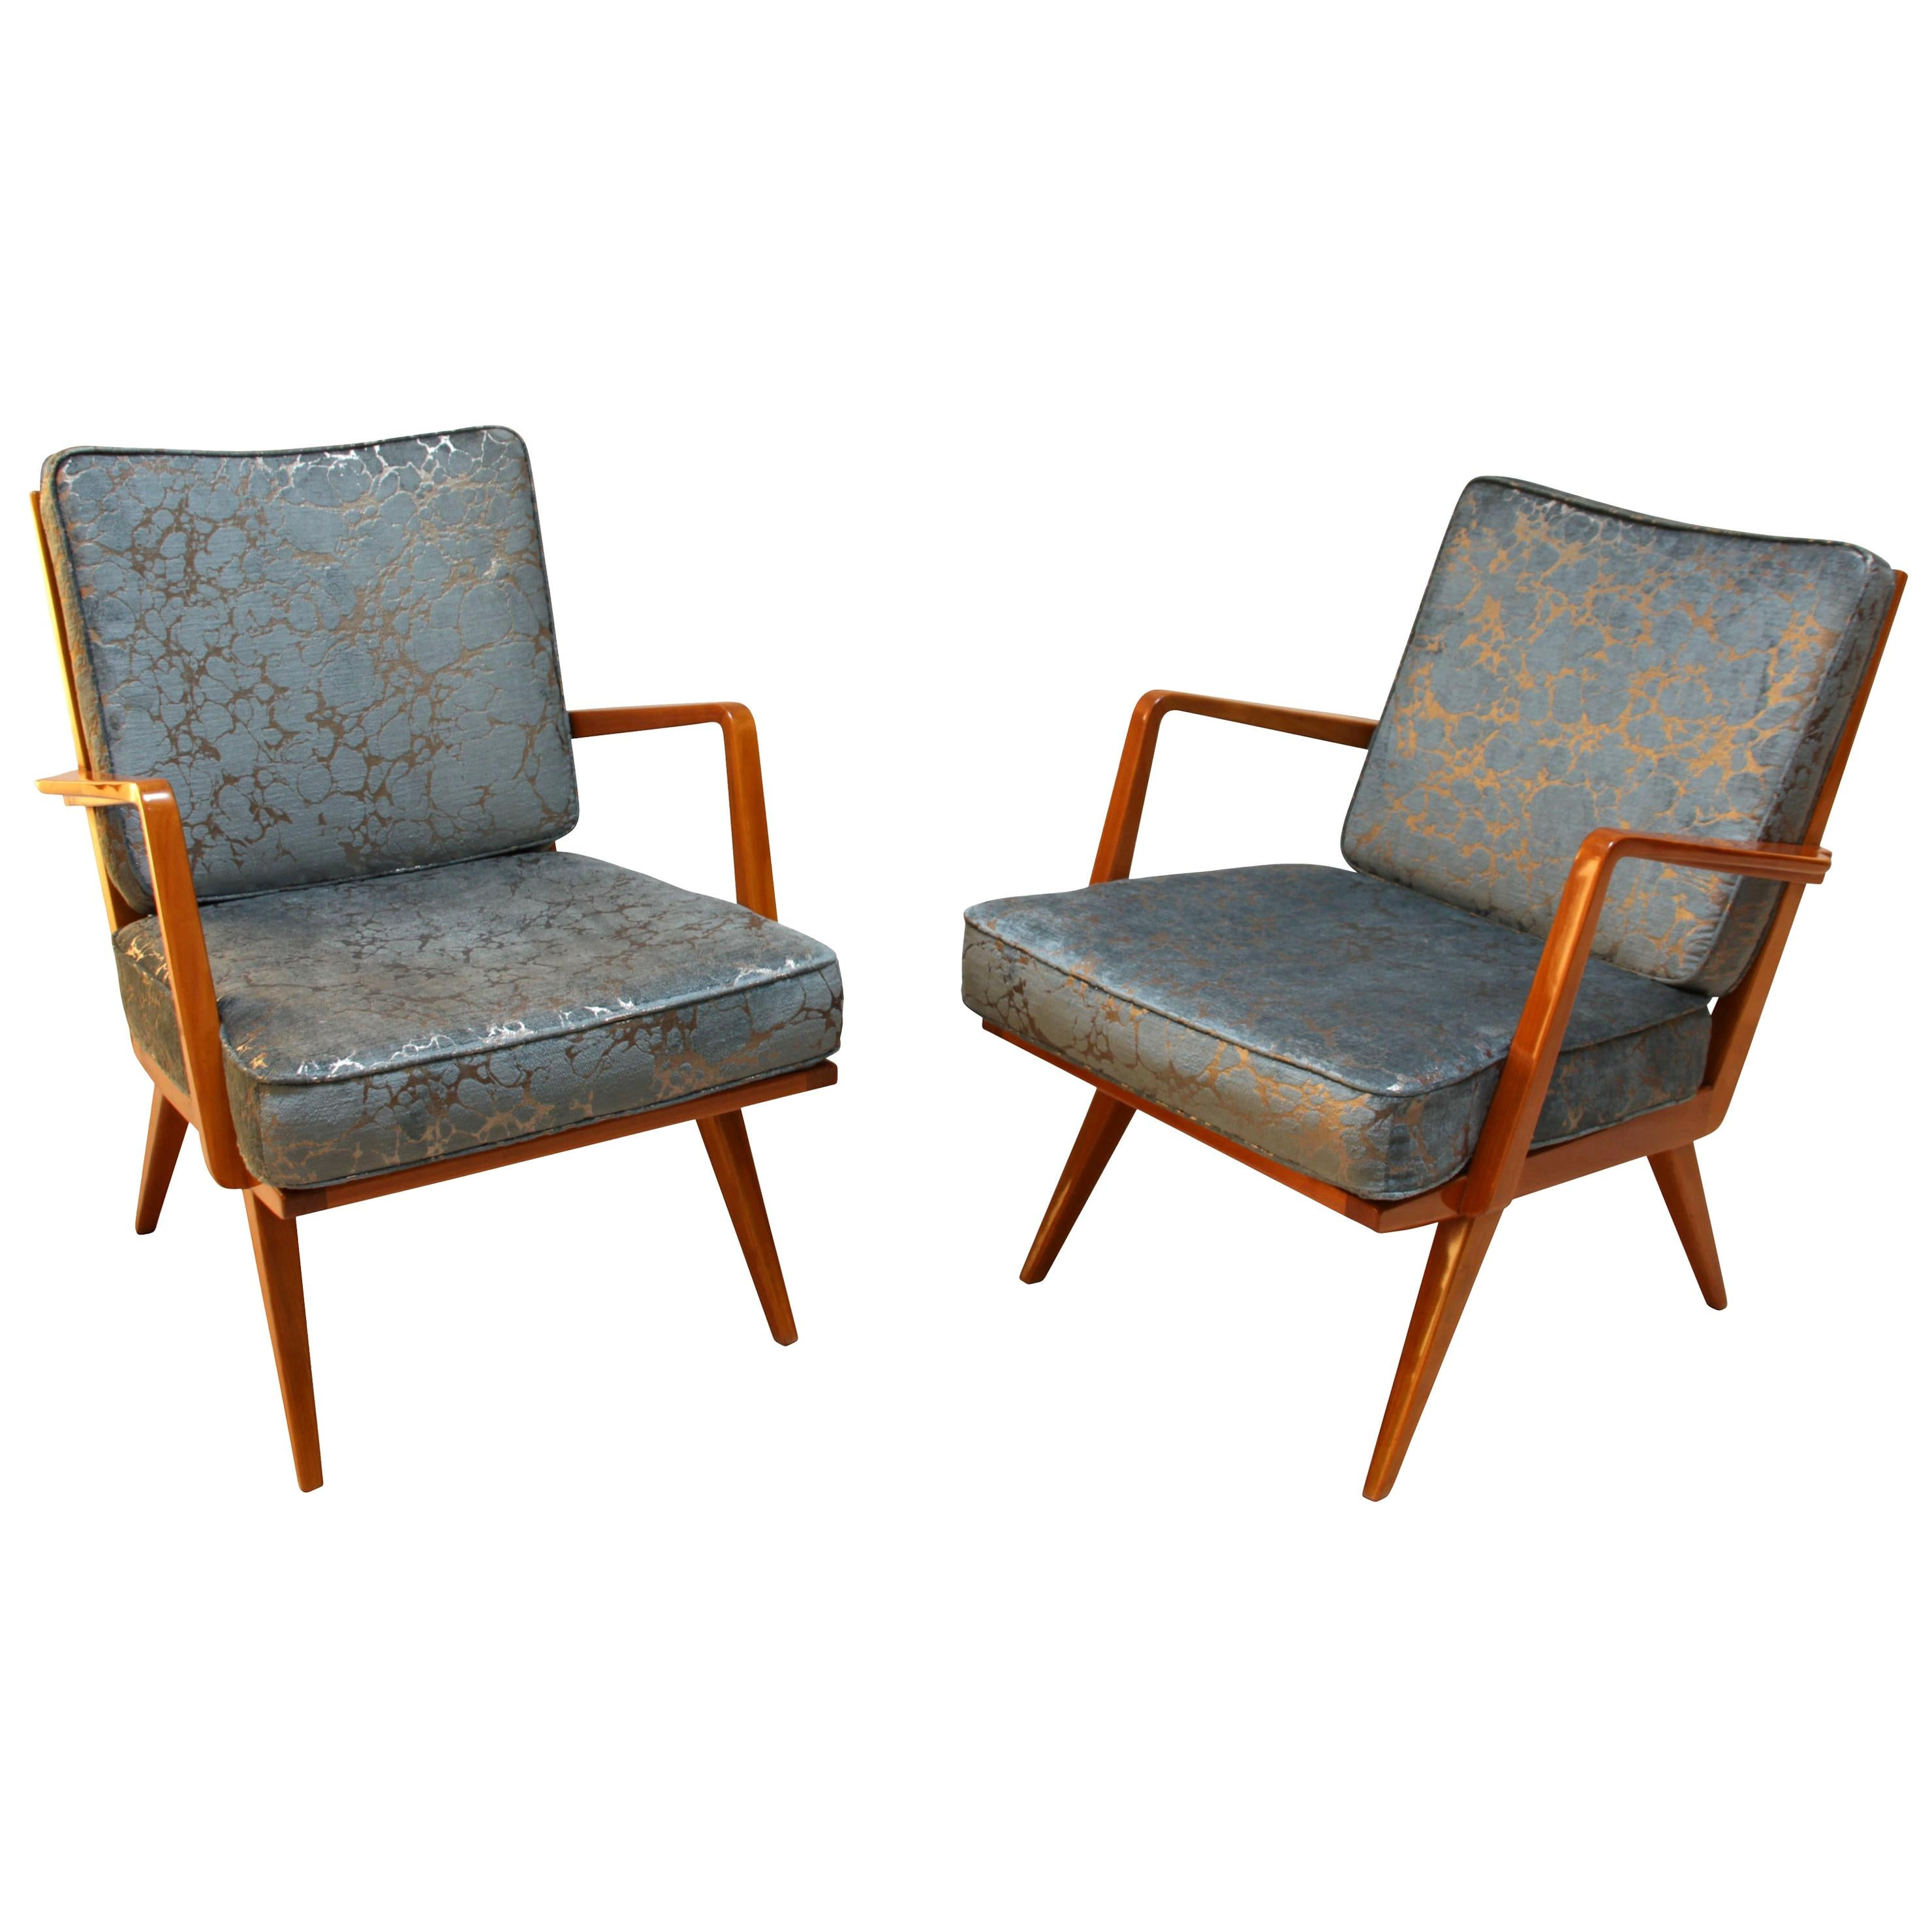 Pair of Midcentury Armchairs, Cherrywood, Blue/Silver Fabric, Germany, 1950s